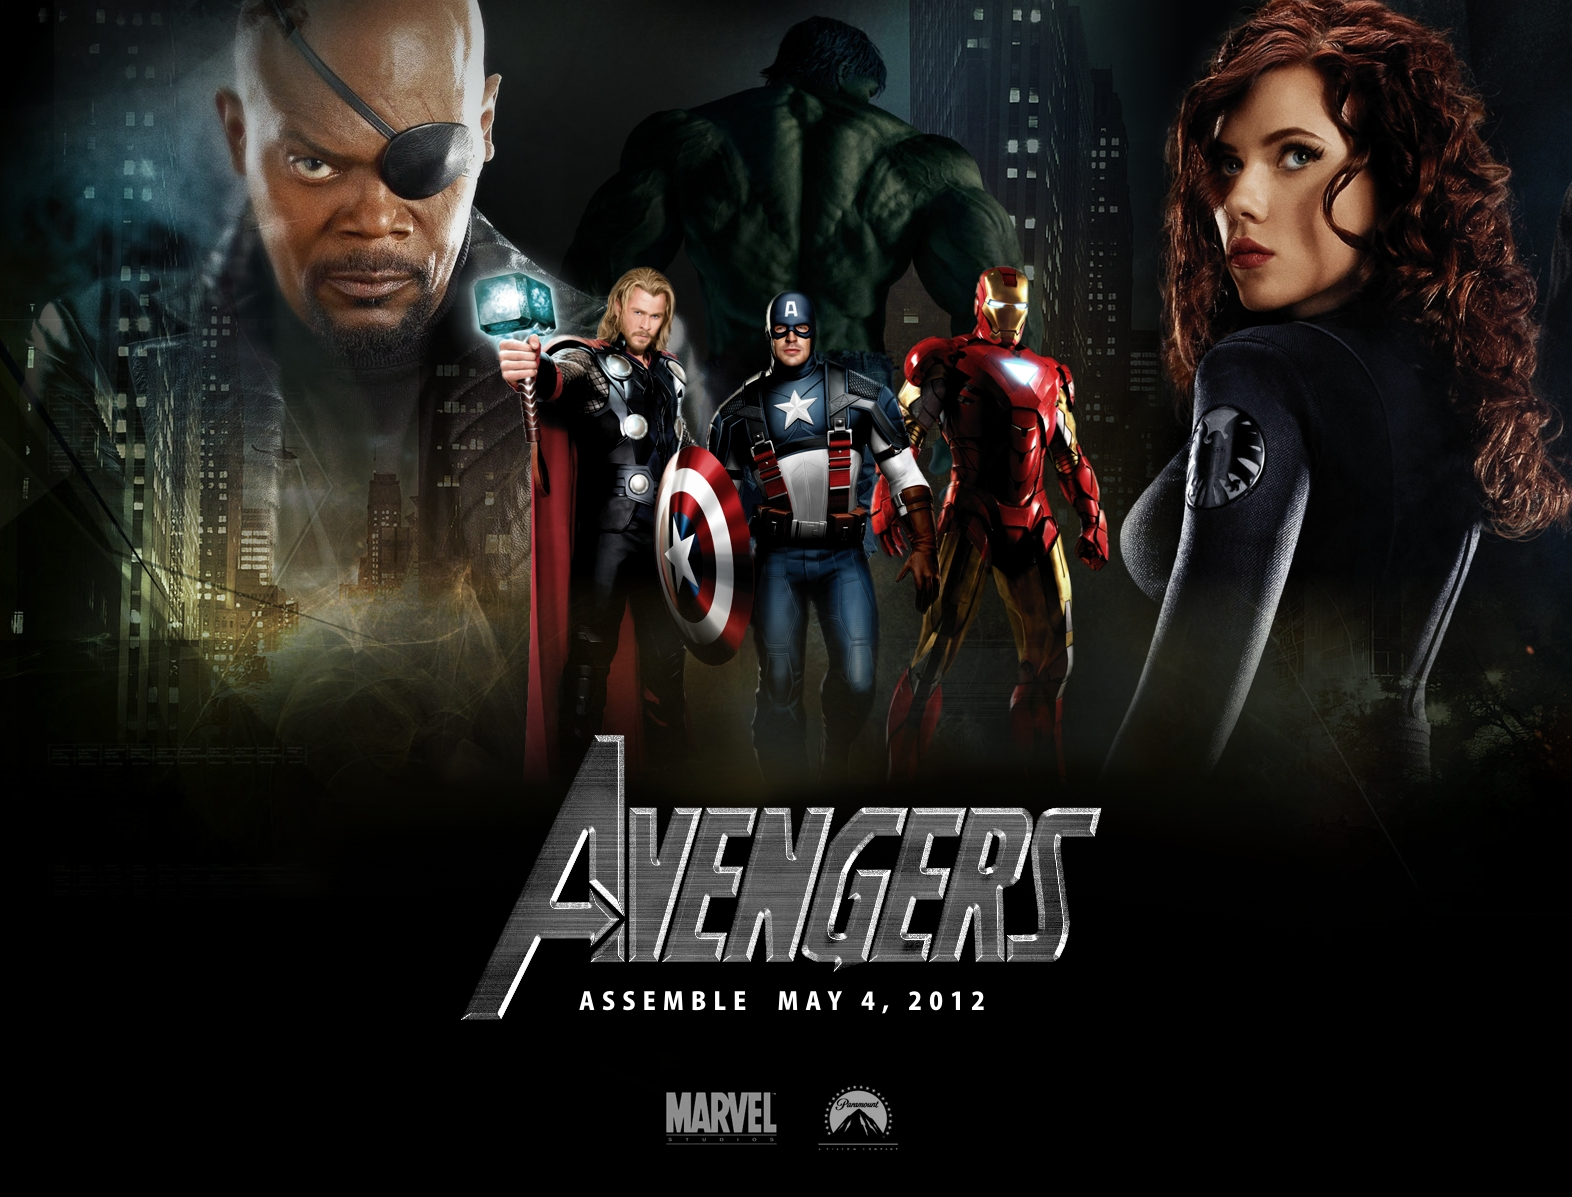 http://3.bp.blogspot.com/-sQnzbOl457M/TvADf2v5QeI/AAAAAAAADrY/upYVhSQ-Lyg/s1600/The-Avengers-Movie-Wallpaper-01.jpg